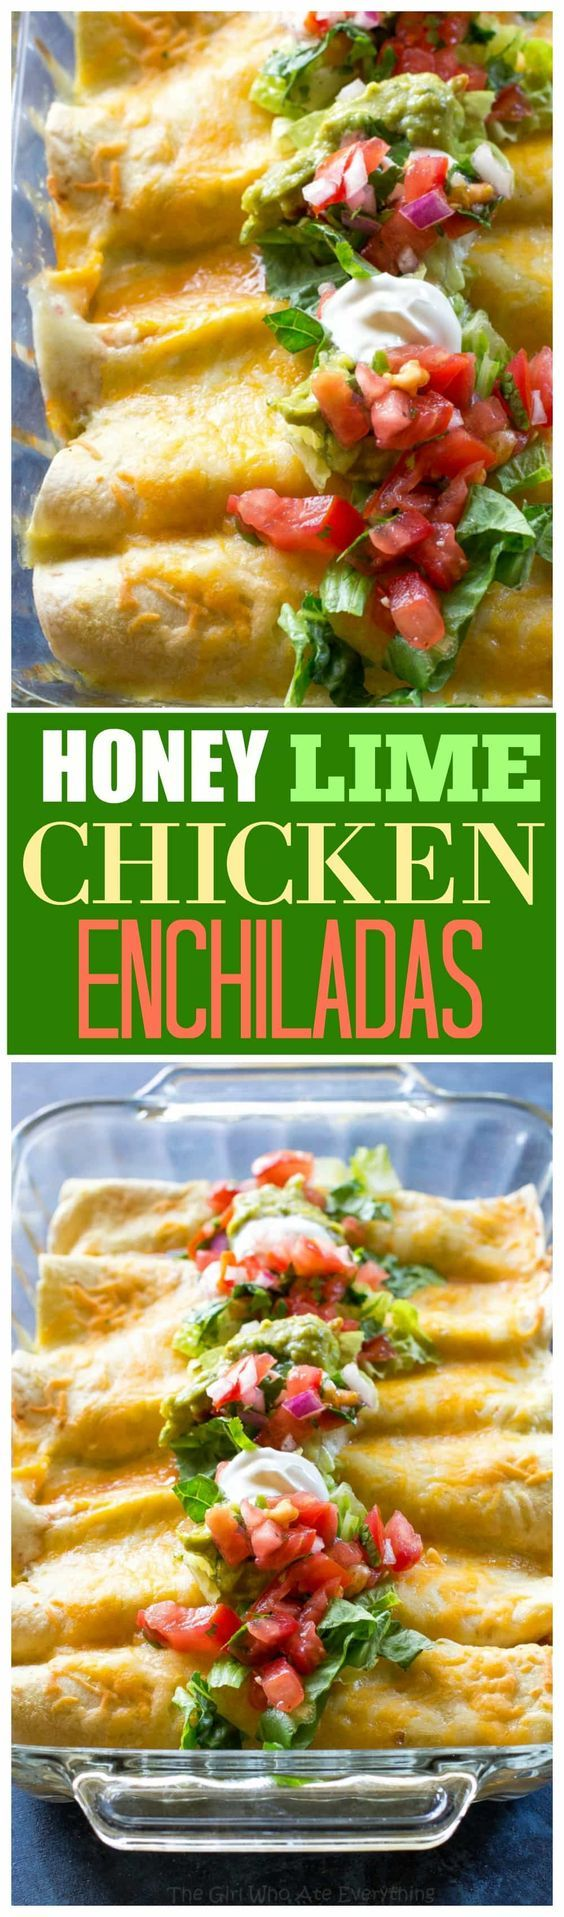 632 best eat mexican food images on pinterest recipes baking honey lime chicken enchiladas my go to easy mexican dinner for company that is forumfinder Choice Image